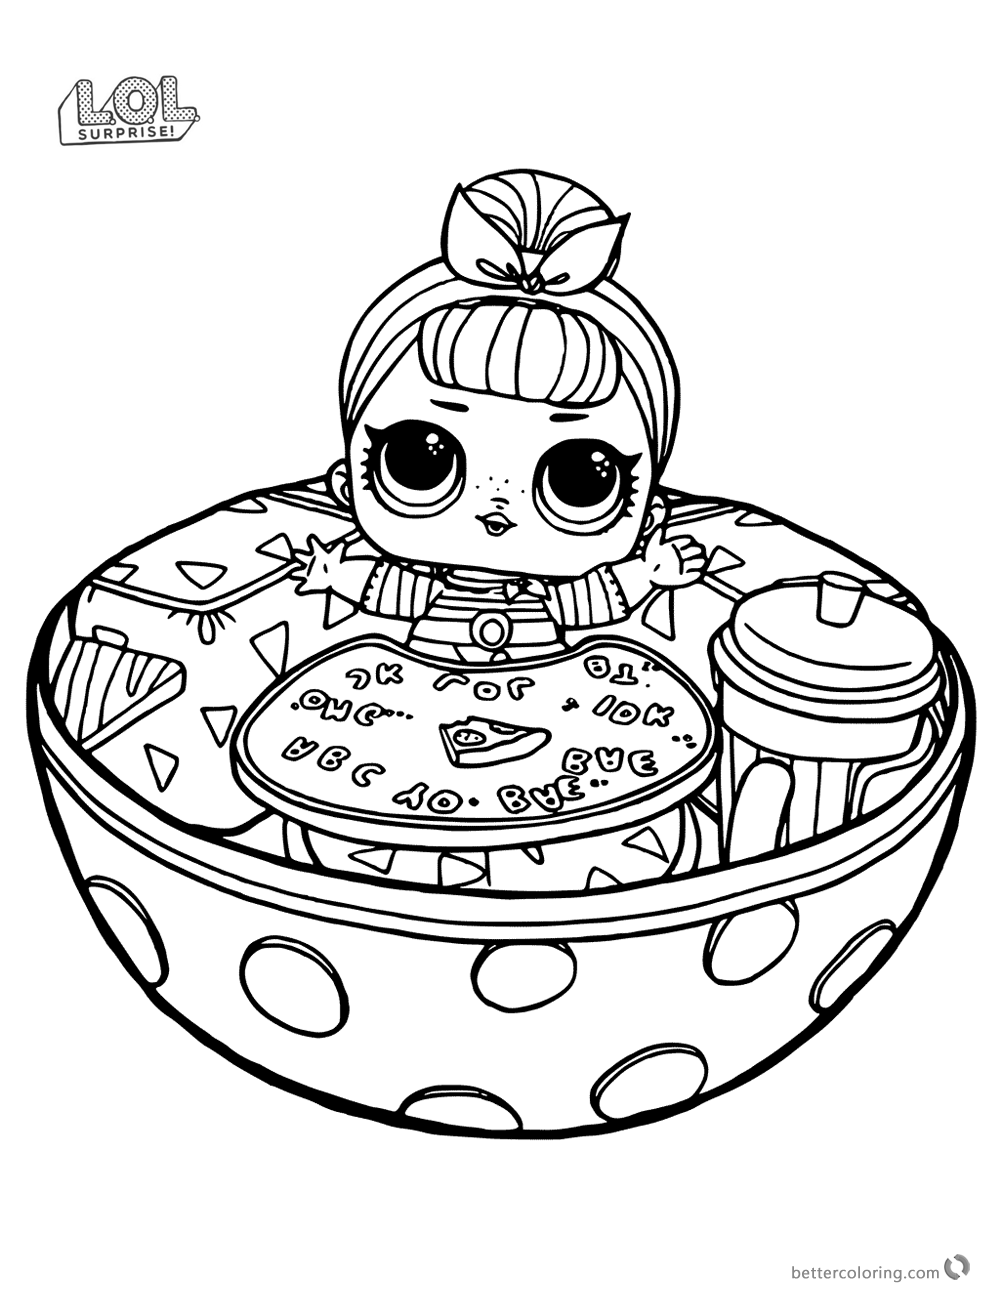 Funny Lol Surprise Doll Coloring Pages Free Printable Coloring Pages